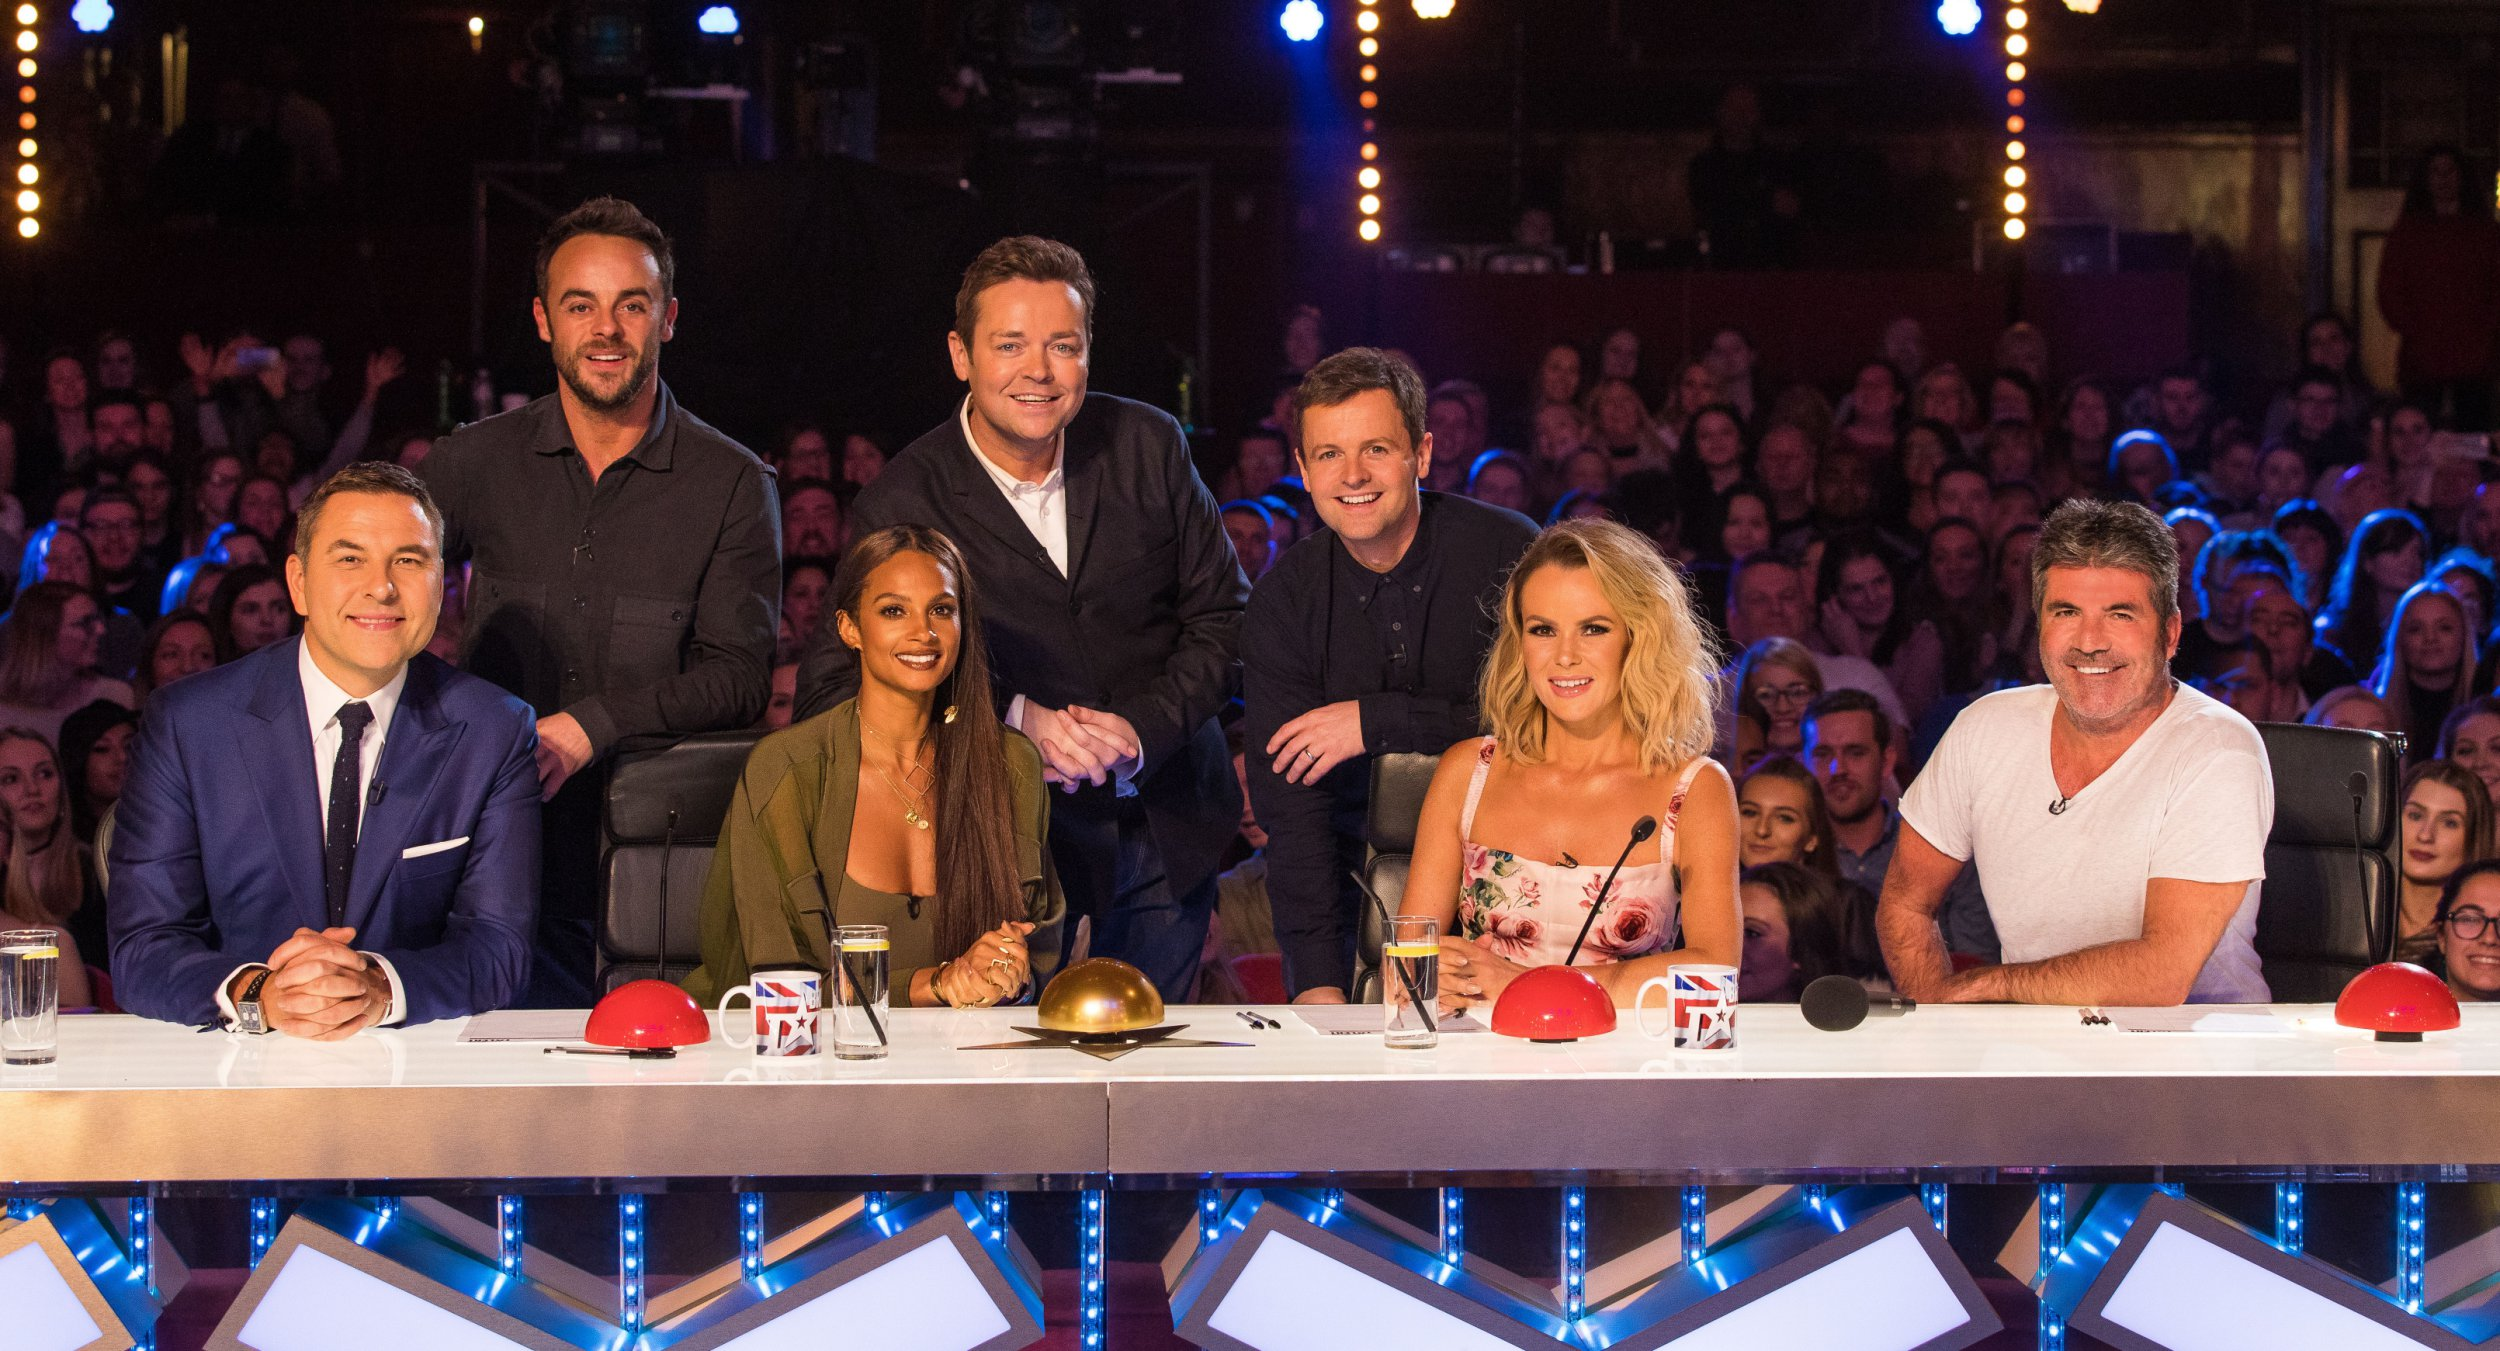 EDITORIAL USE ONLY - NO MERCHANDISING Mandatory Credit: Photo by Dymond/Thames/Syco/REX/Shutterstock (9351090a) Anthony McPartlin, Stephen Mulhern, Declan Donnelly, David Walliams, Alesha Dixon, Amanda Holden and Simon Cowell 'Britain's Got Talent' TV show, Judges, London, UK - 01 Feb 2018